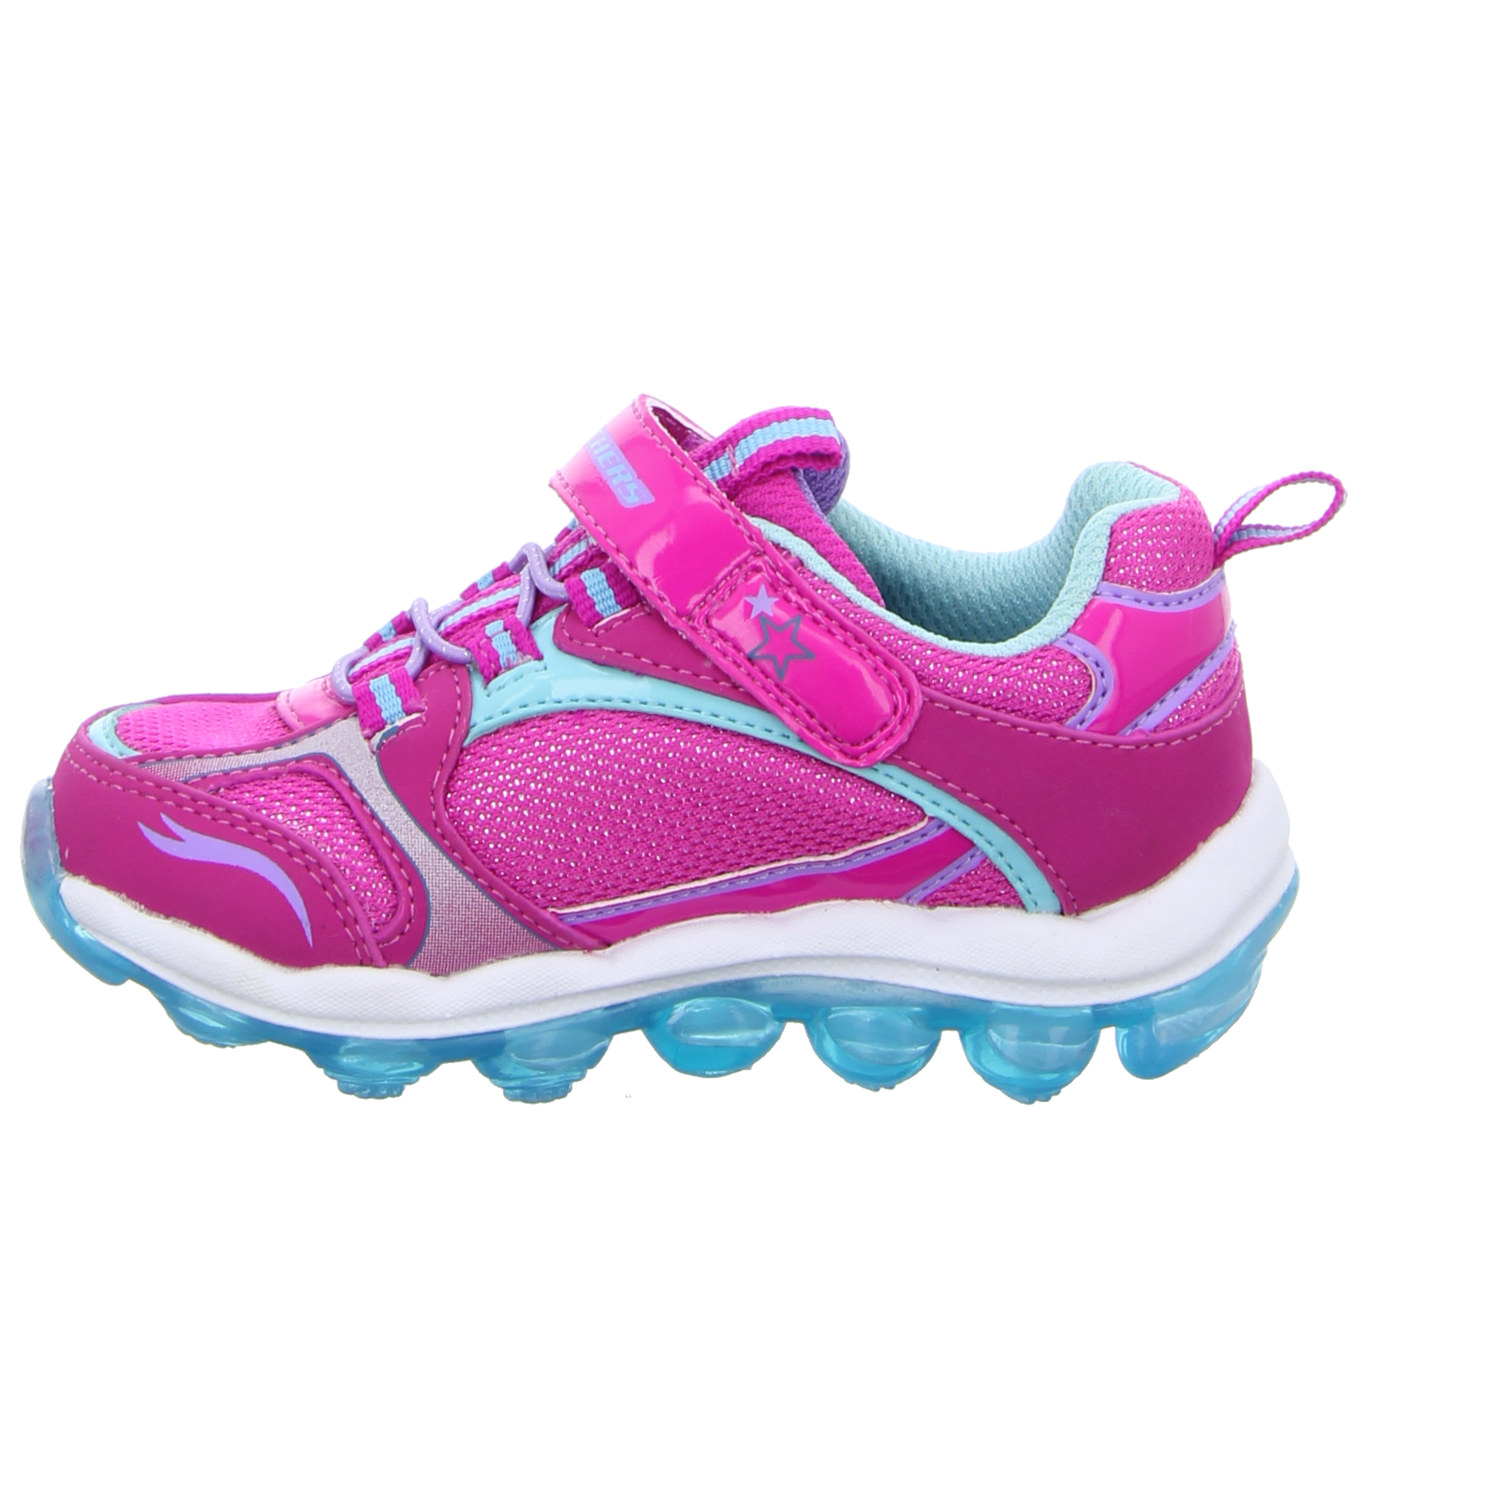 Skechers Kinder Maedchen 80239N TV Aktion 80220N NPMT Pink